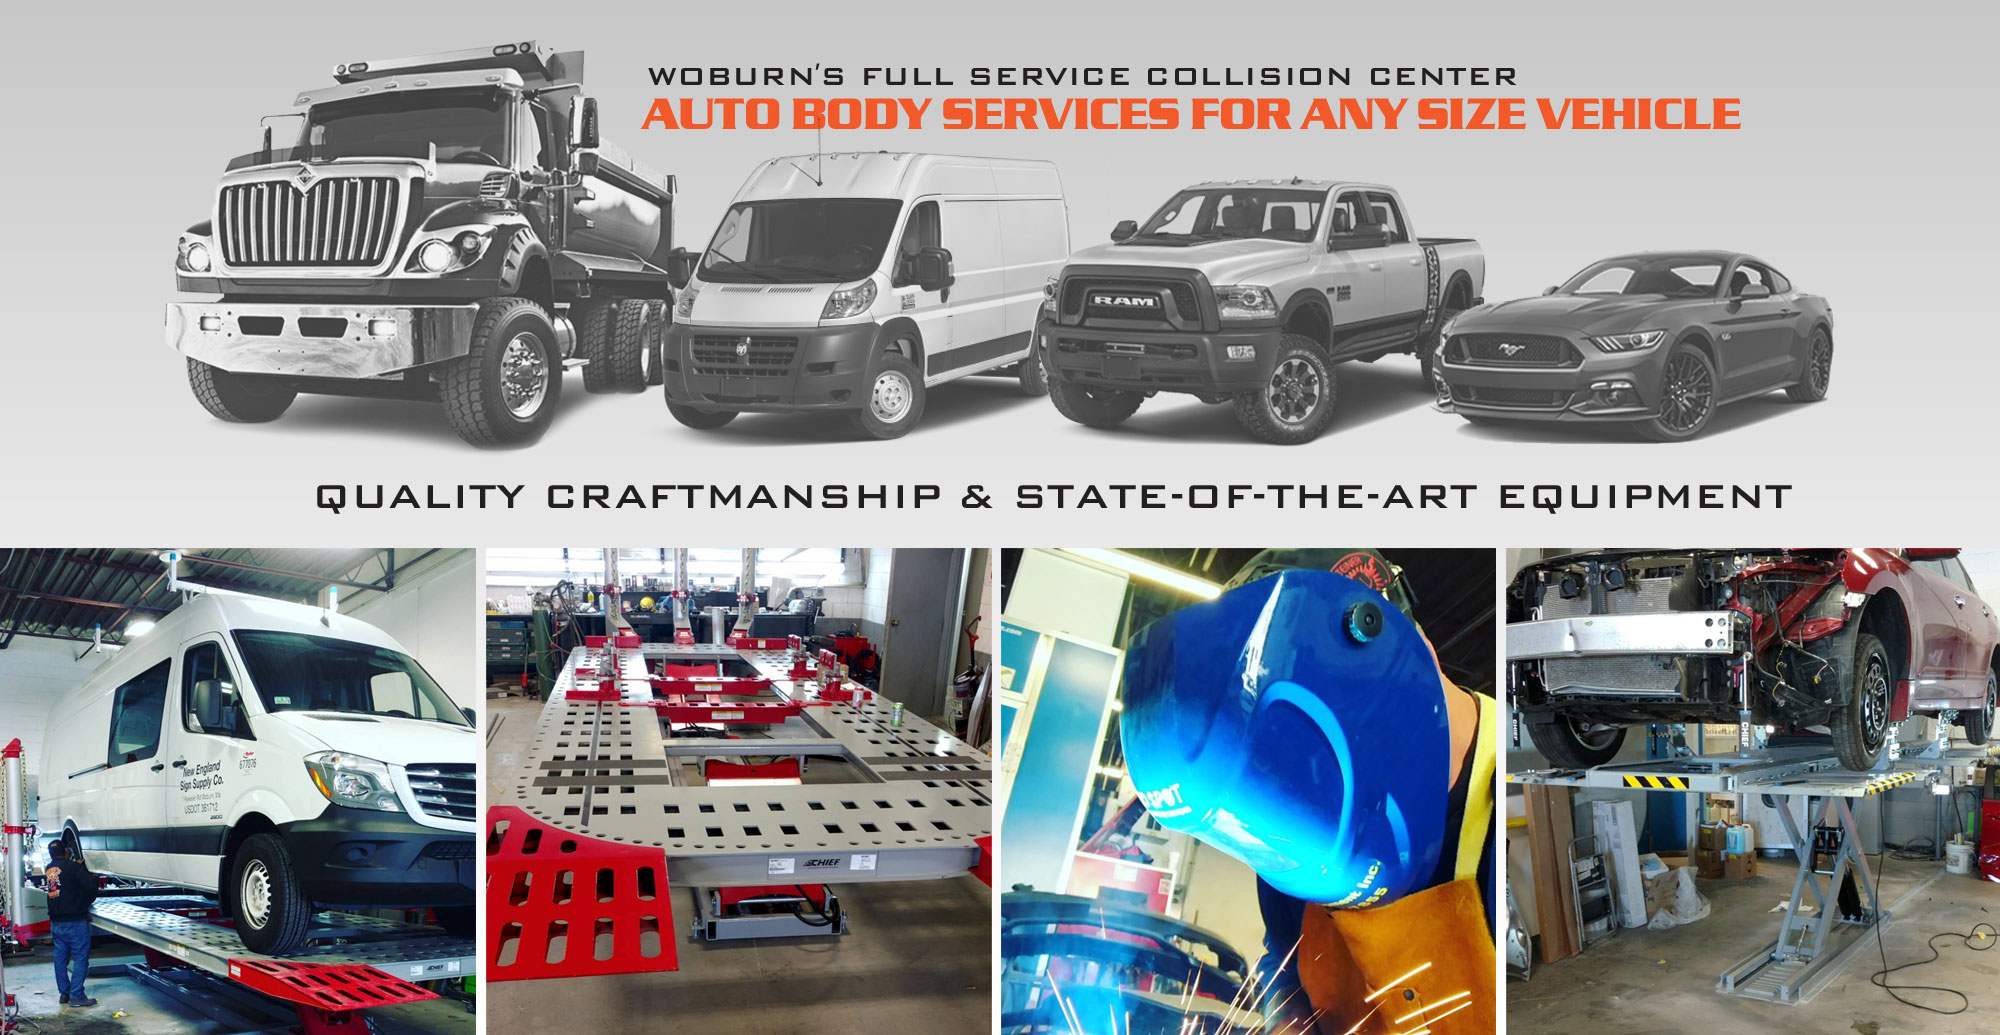 Woburn's Full Service Collision Center